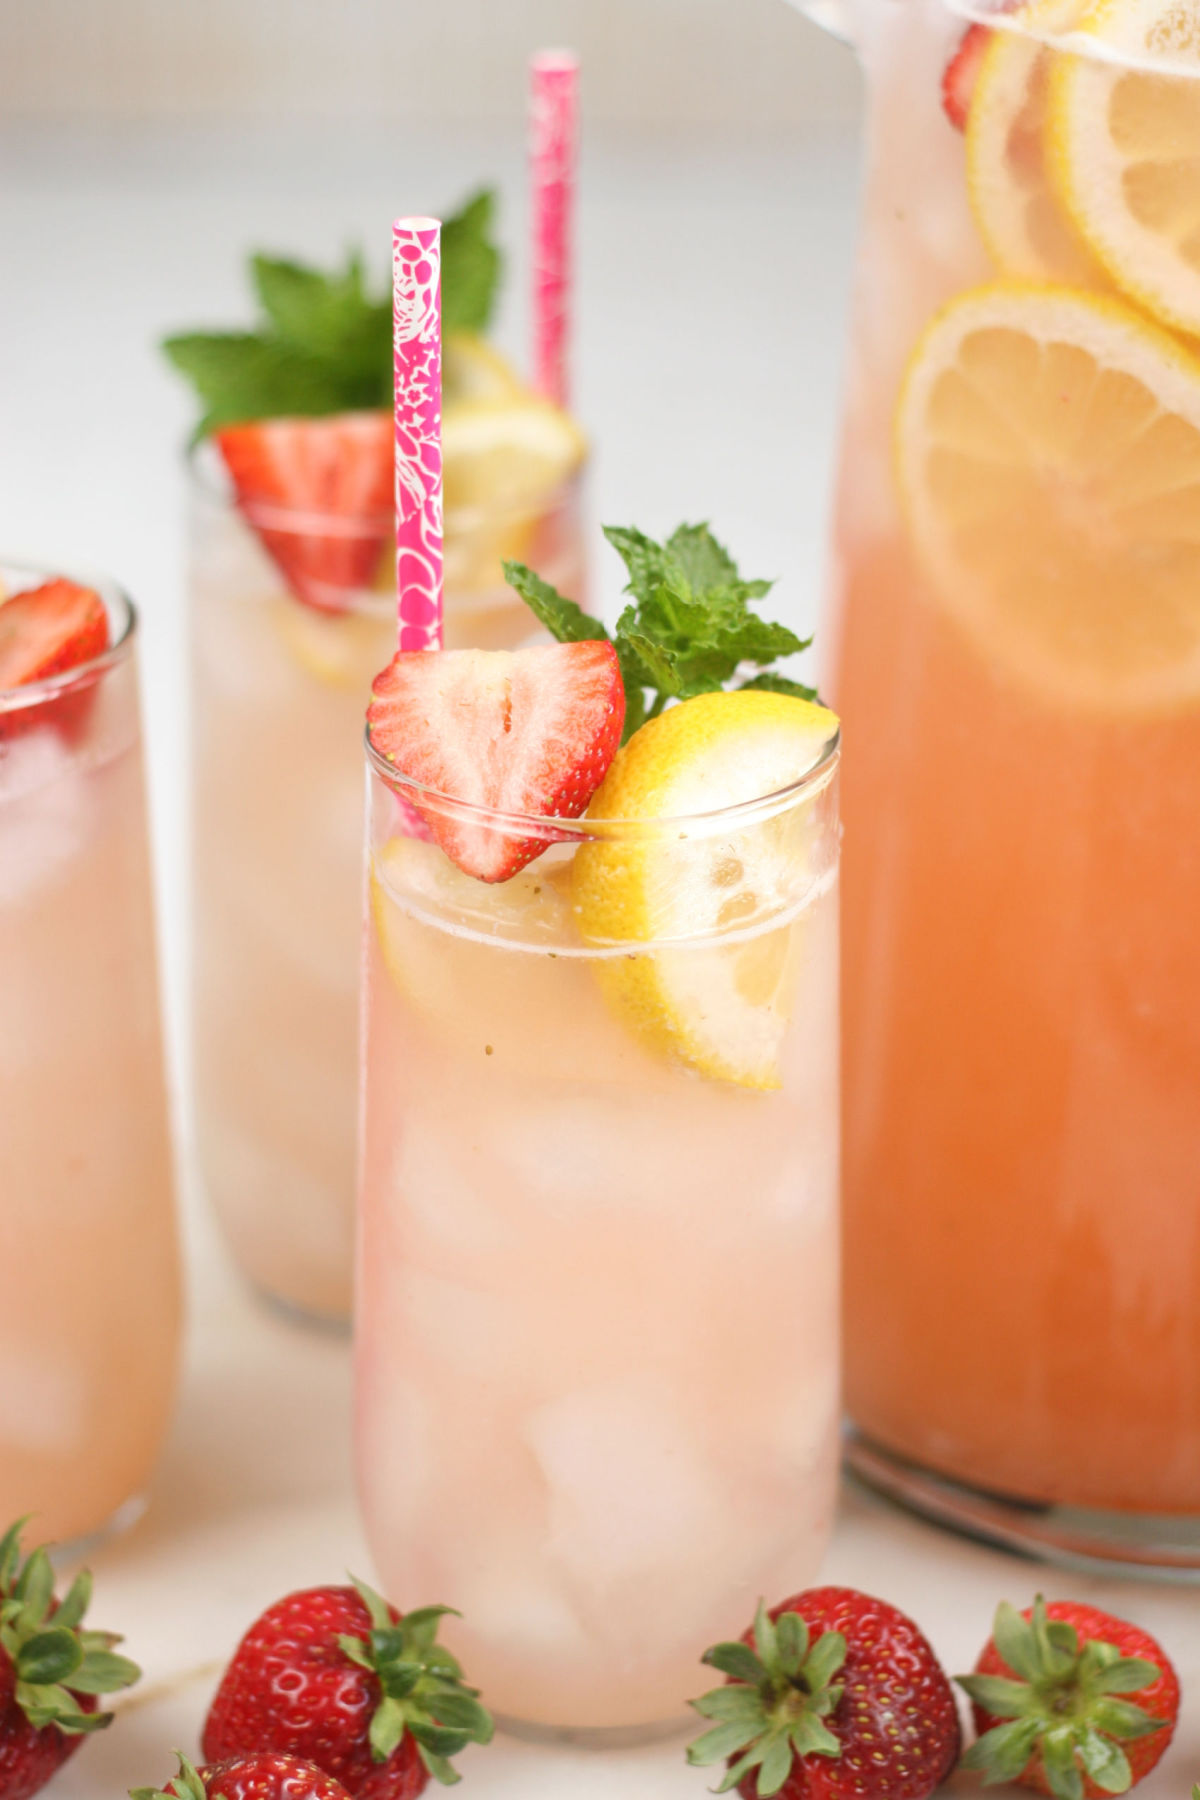 Clear cylinder glass of strawberry lemonade, fresh strawberry slices, ice cubes, lemon slices, fresh mint in glass.